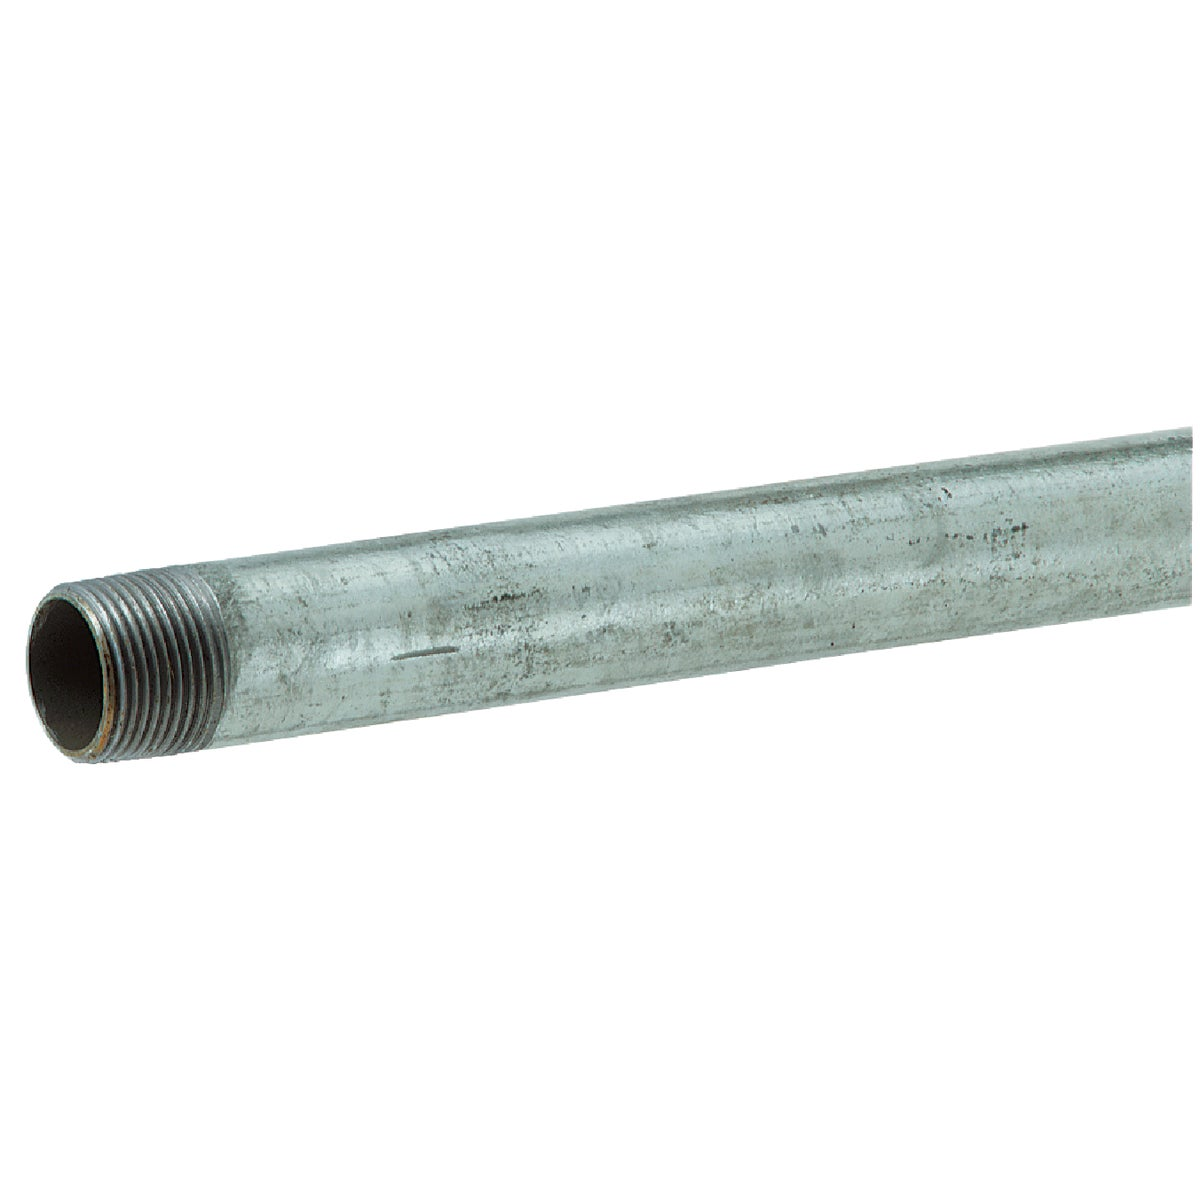 1-1/2X36GALV RDI-CT PIPE - 11/2X36 by Southland Pipe Nippl